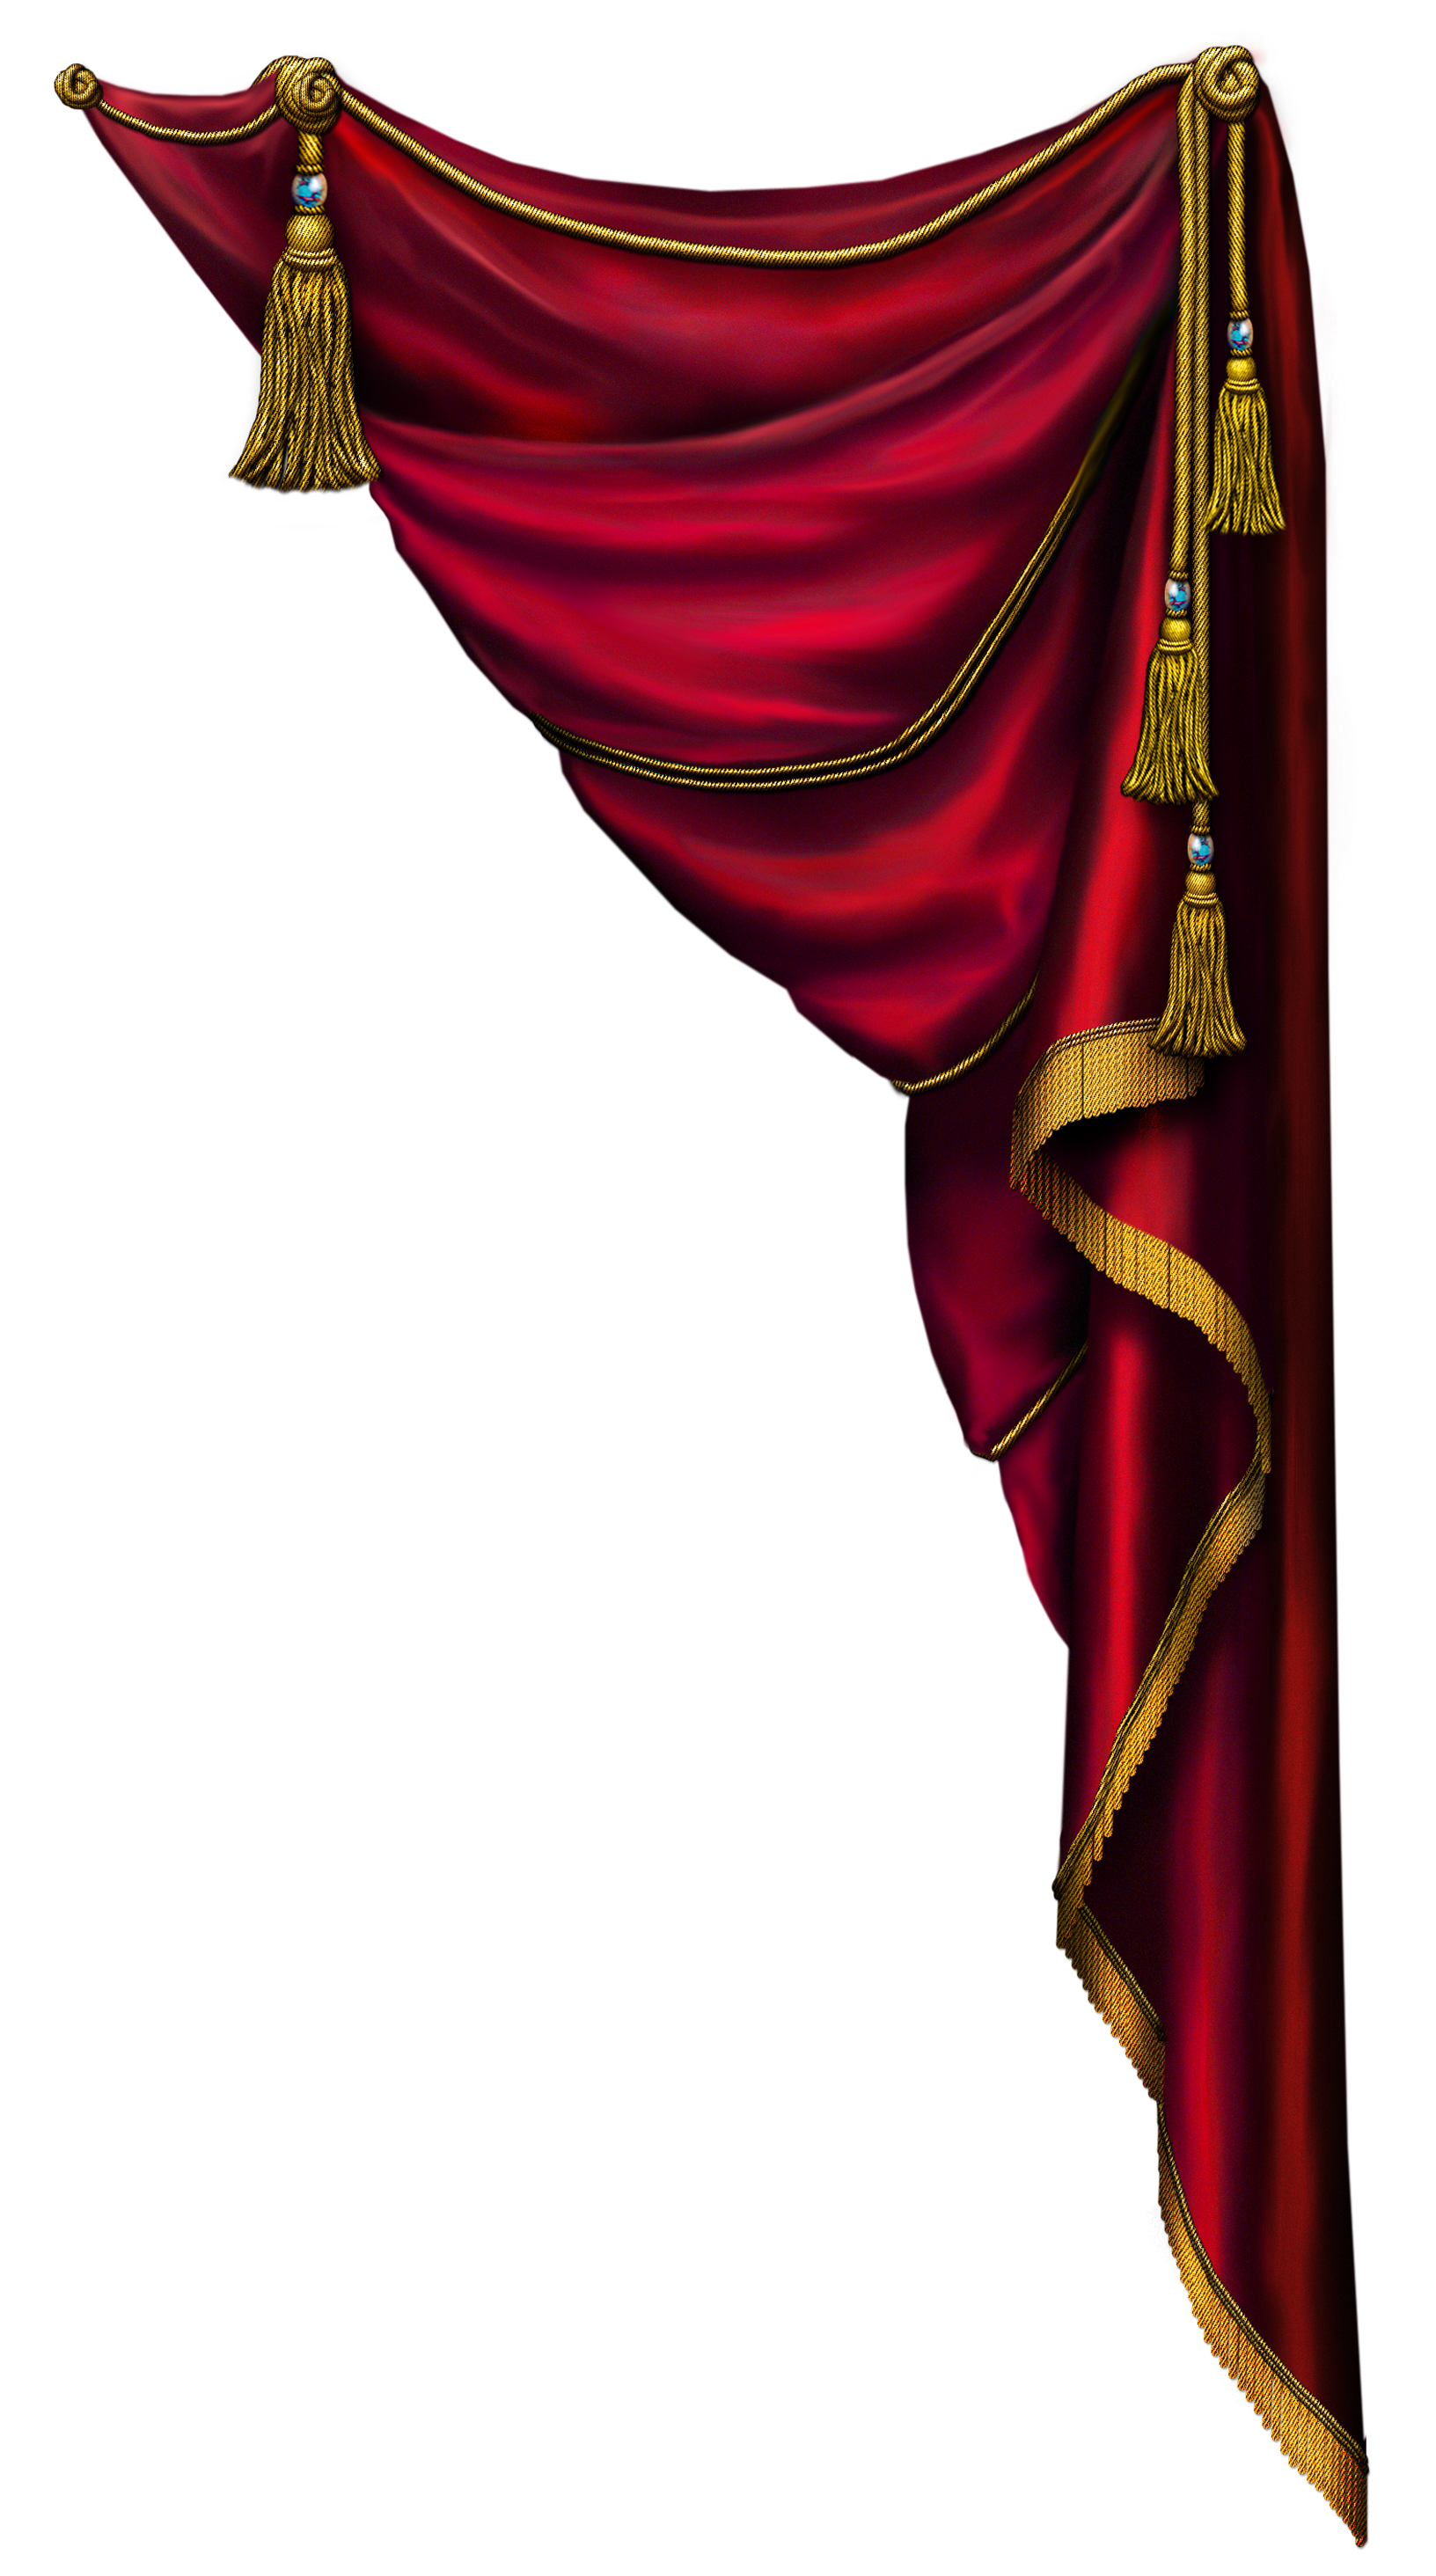 1632x2928 Transparent Red Curtain Png Clipartu200b Gallery Yopriceville